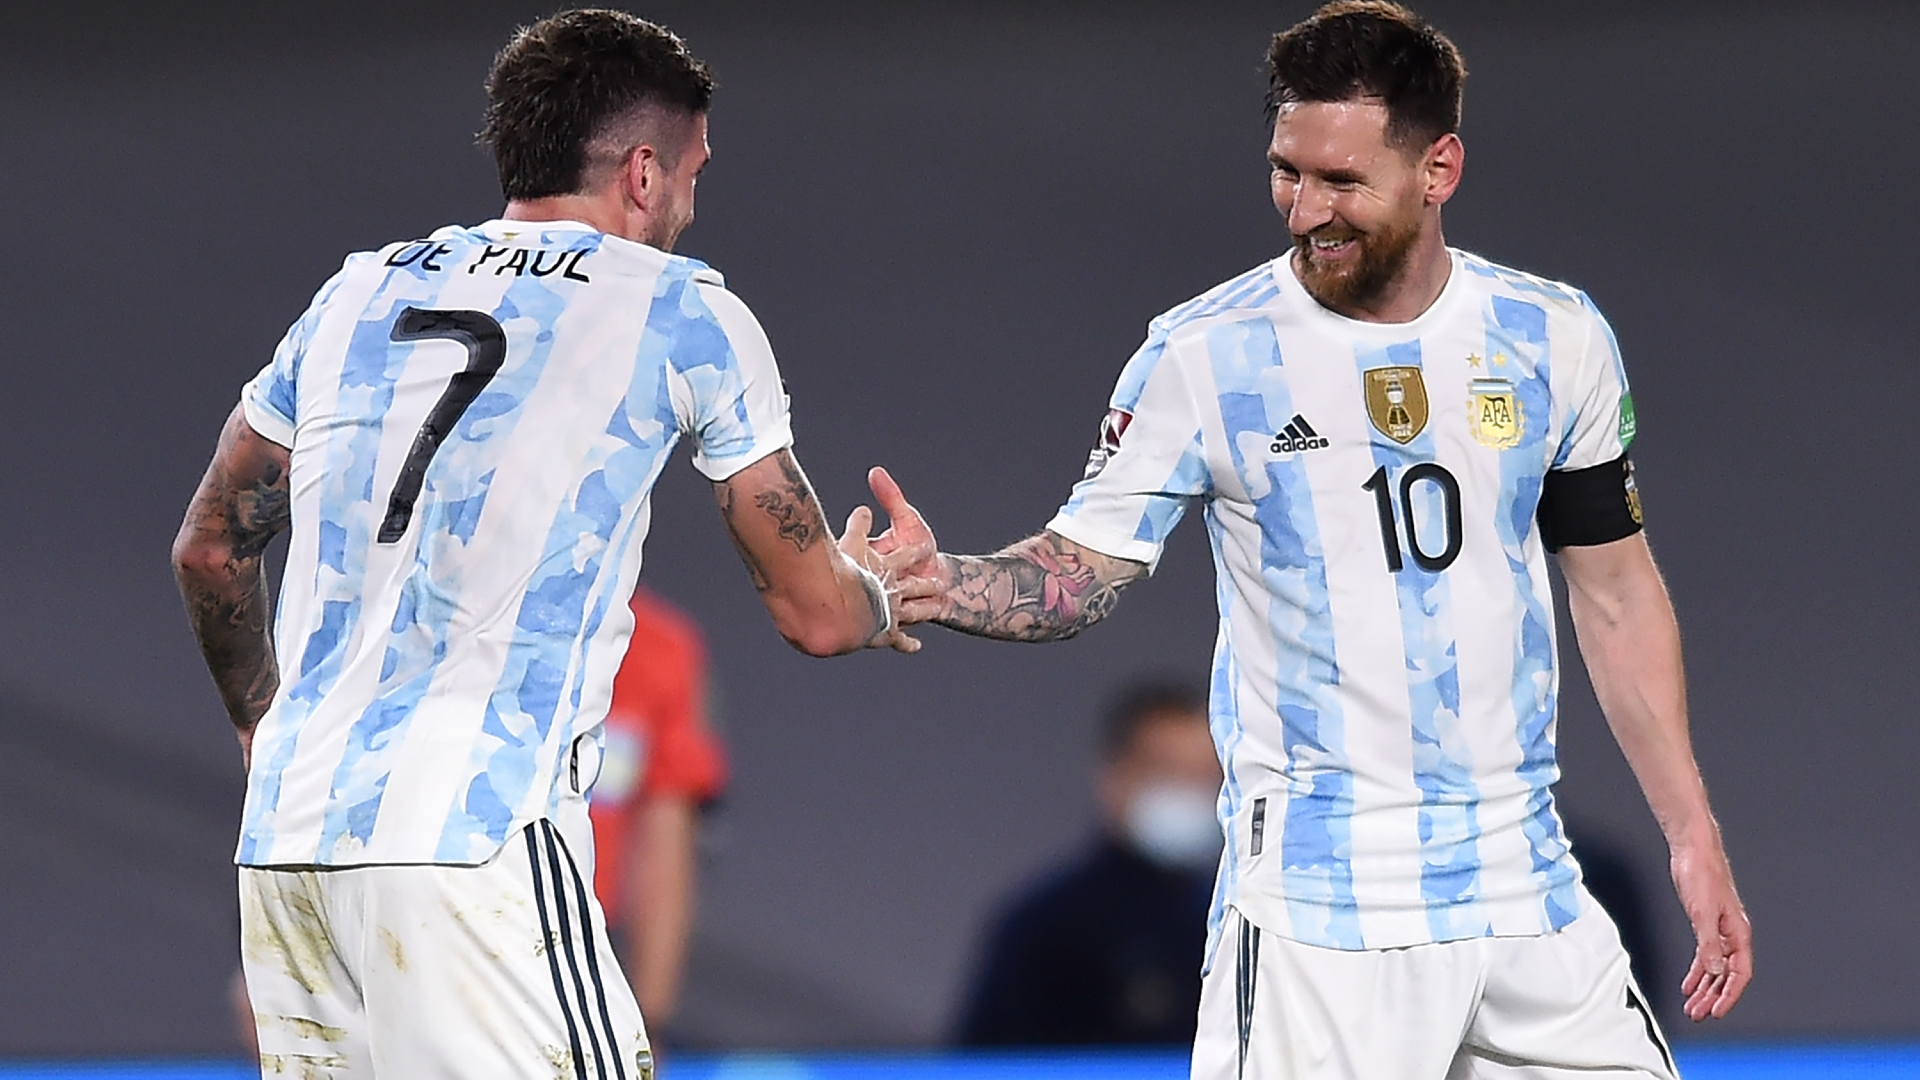 Argentina vs Peru LIVE in FIFA World Cup Qualifiers: Can Argentina finish World Cup Qualifiers unbeaten as it takes on Peru? ARG vs PER live streaming, follow for live updates